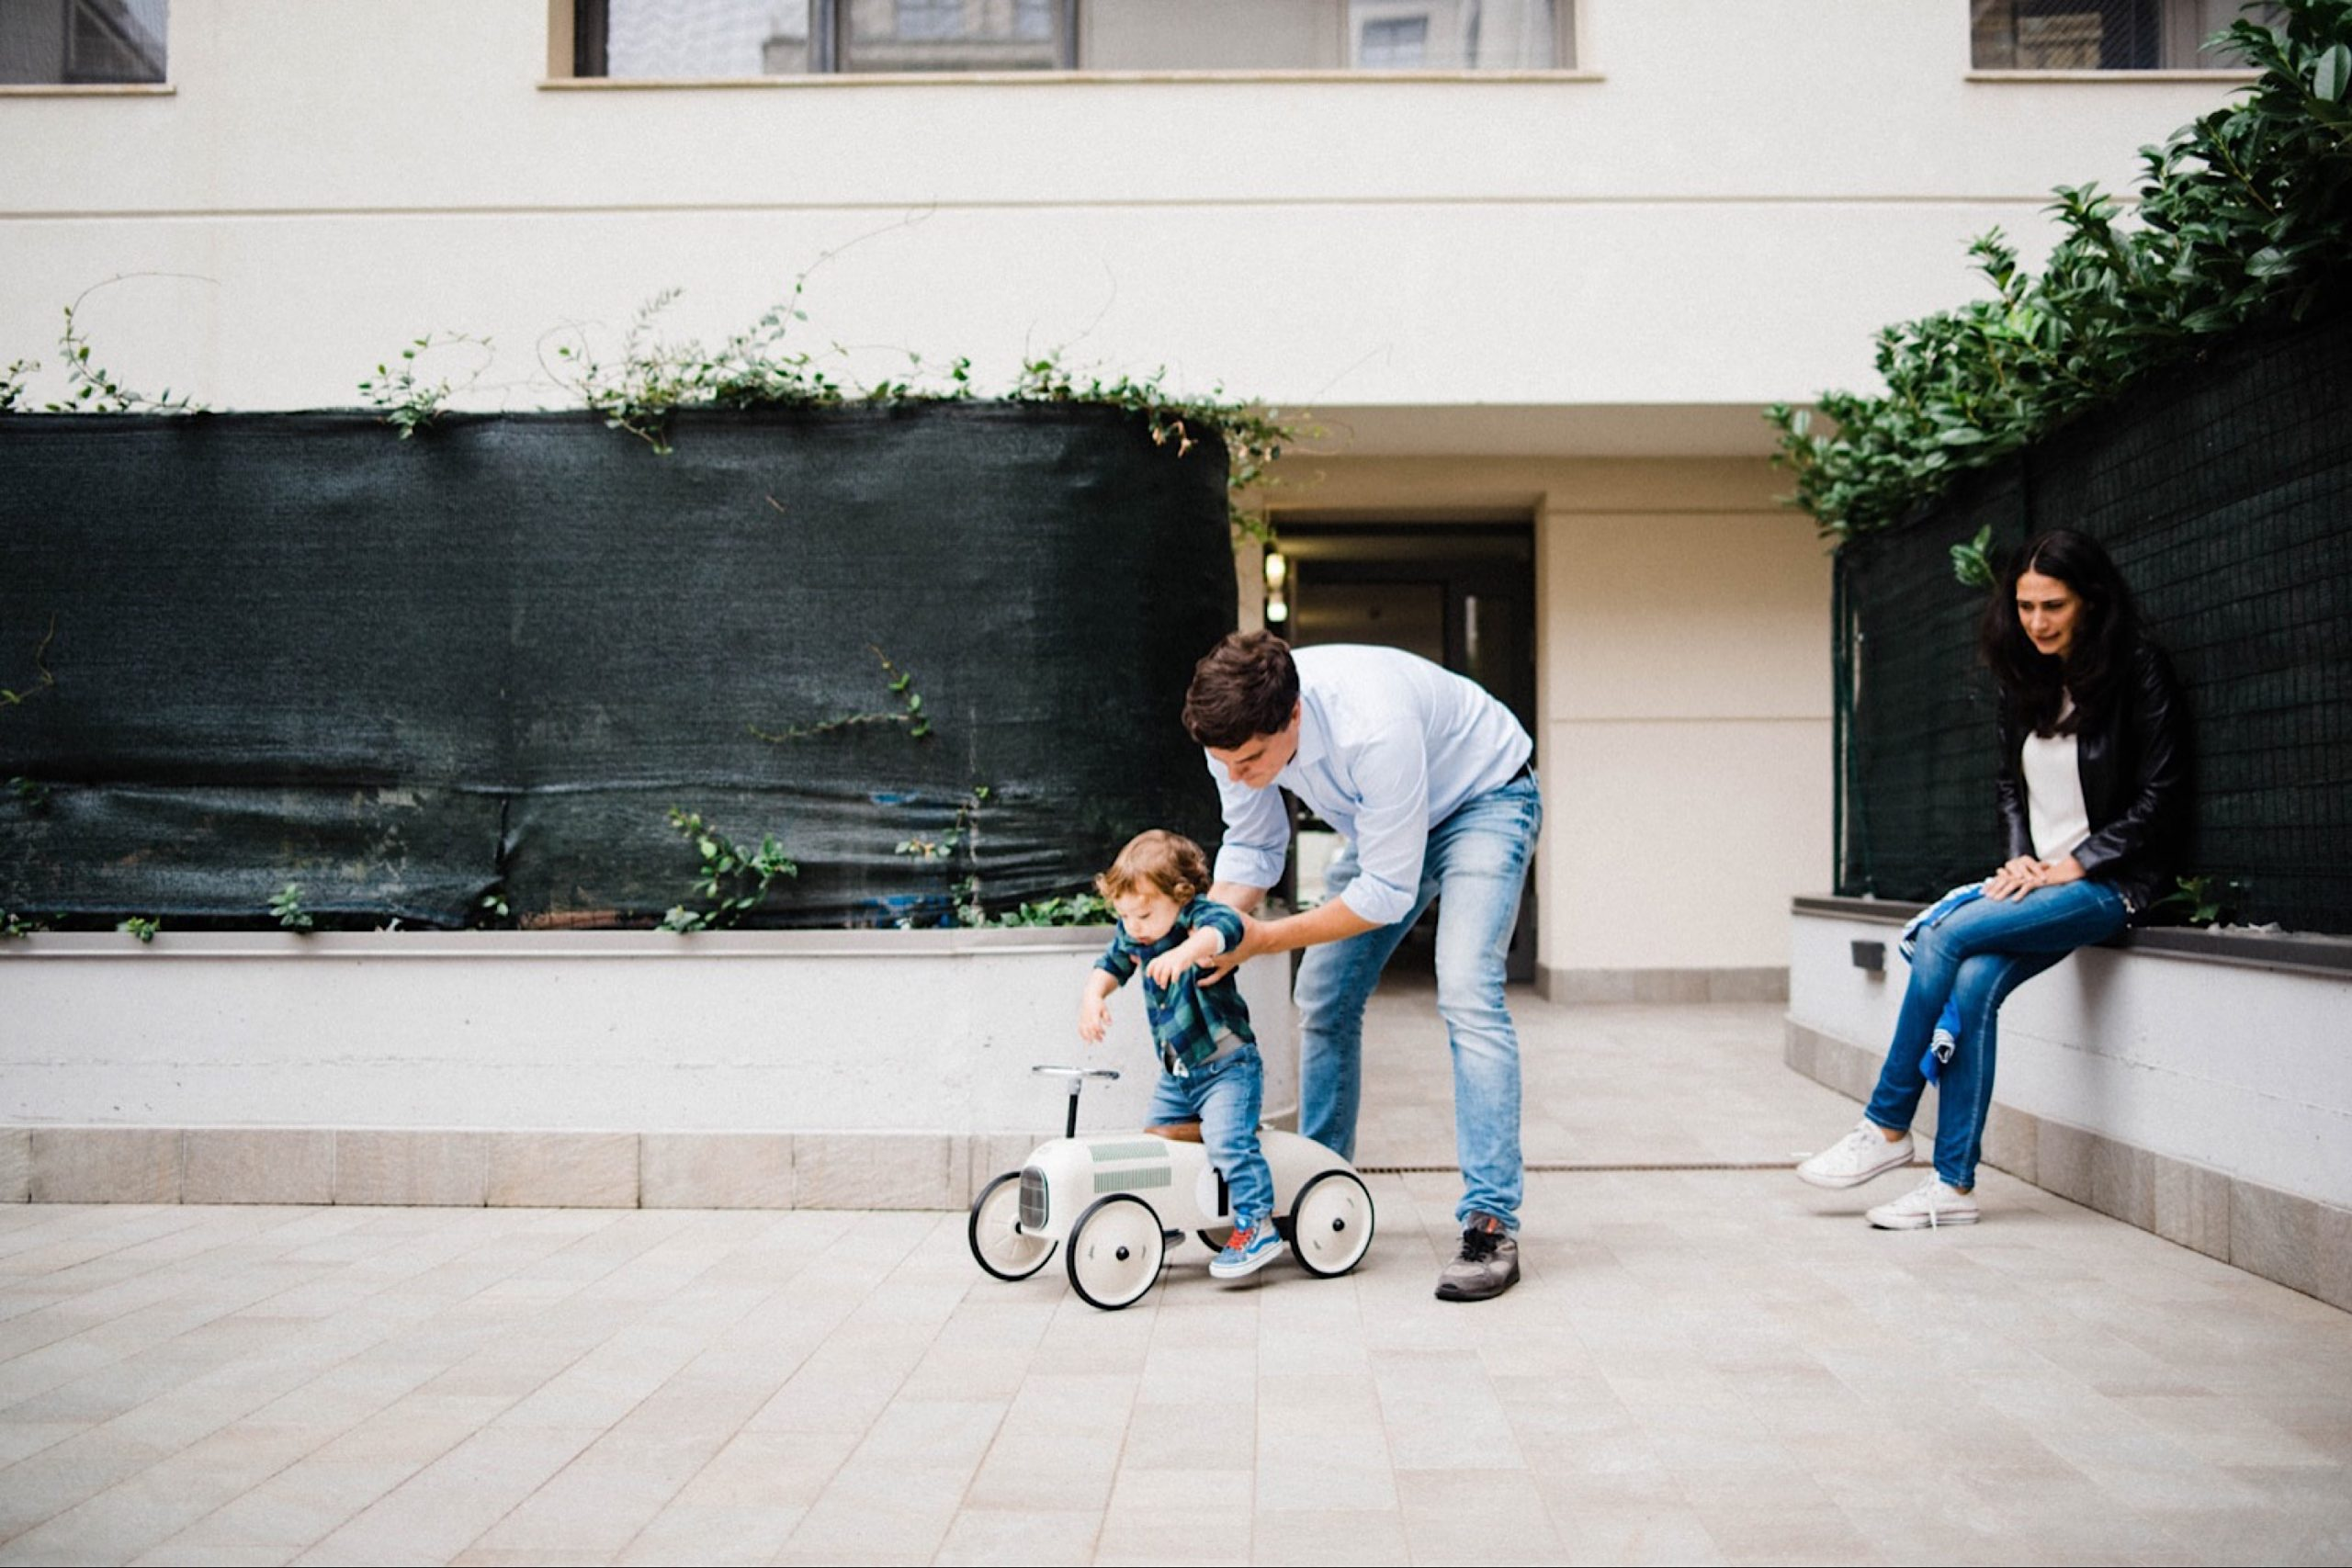 A Dad plays with his baby boy on a toy bike while his Mum watches on.